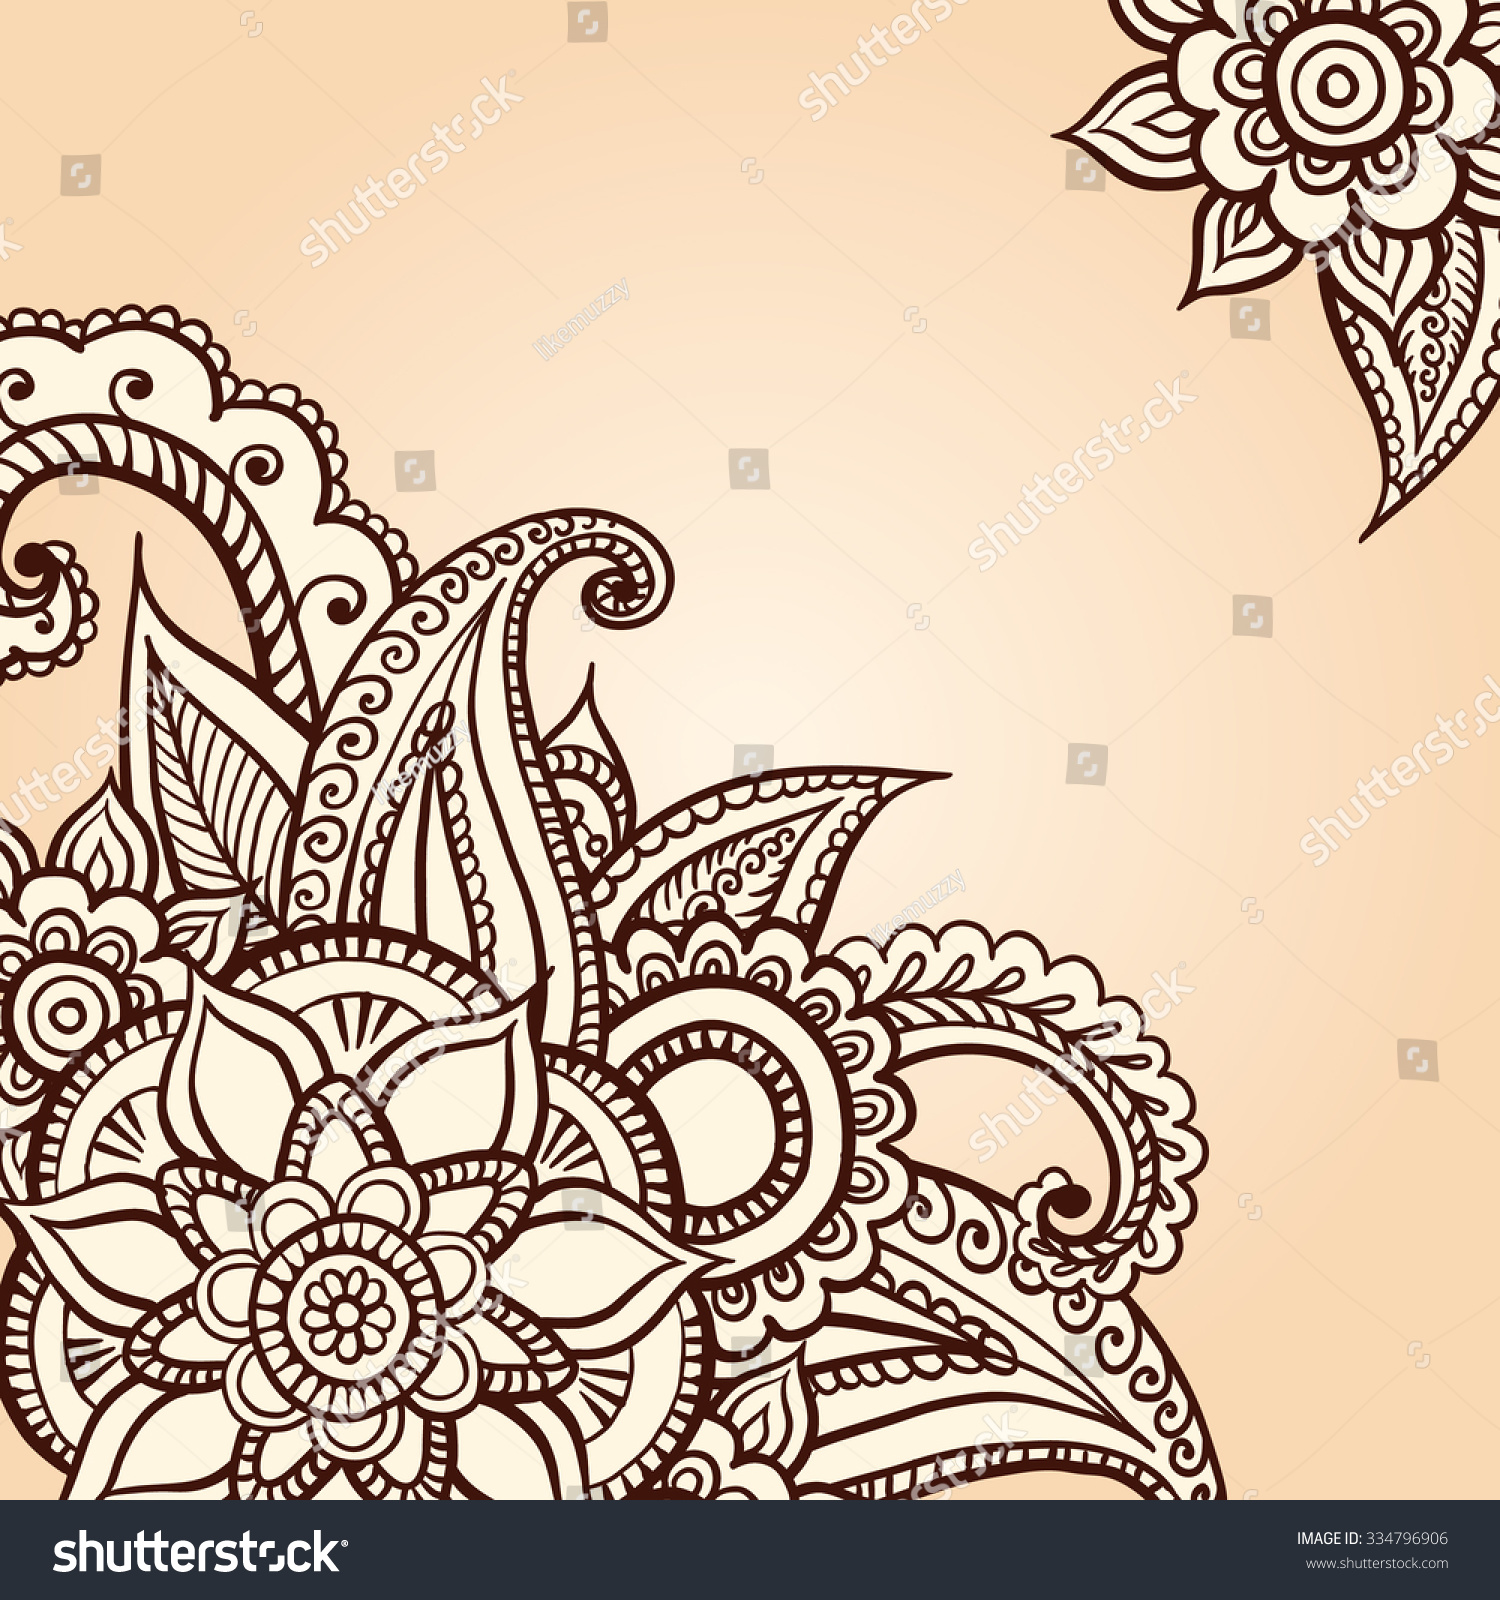 Mendy Greeting Card Wedding Invitation Card Stock Vector 334796906 ...